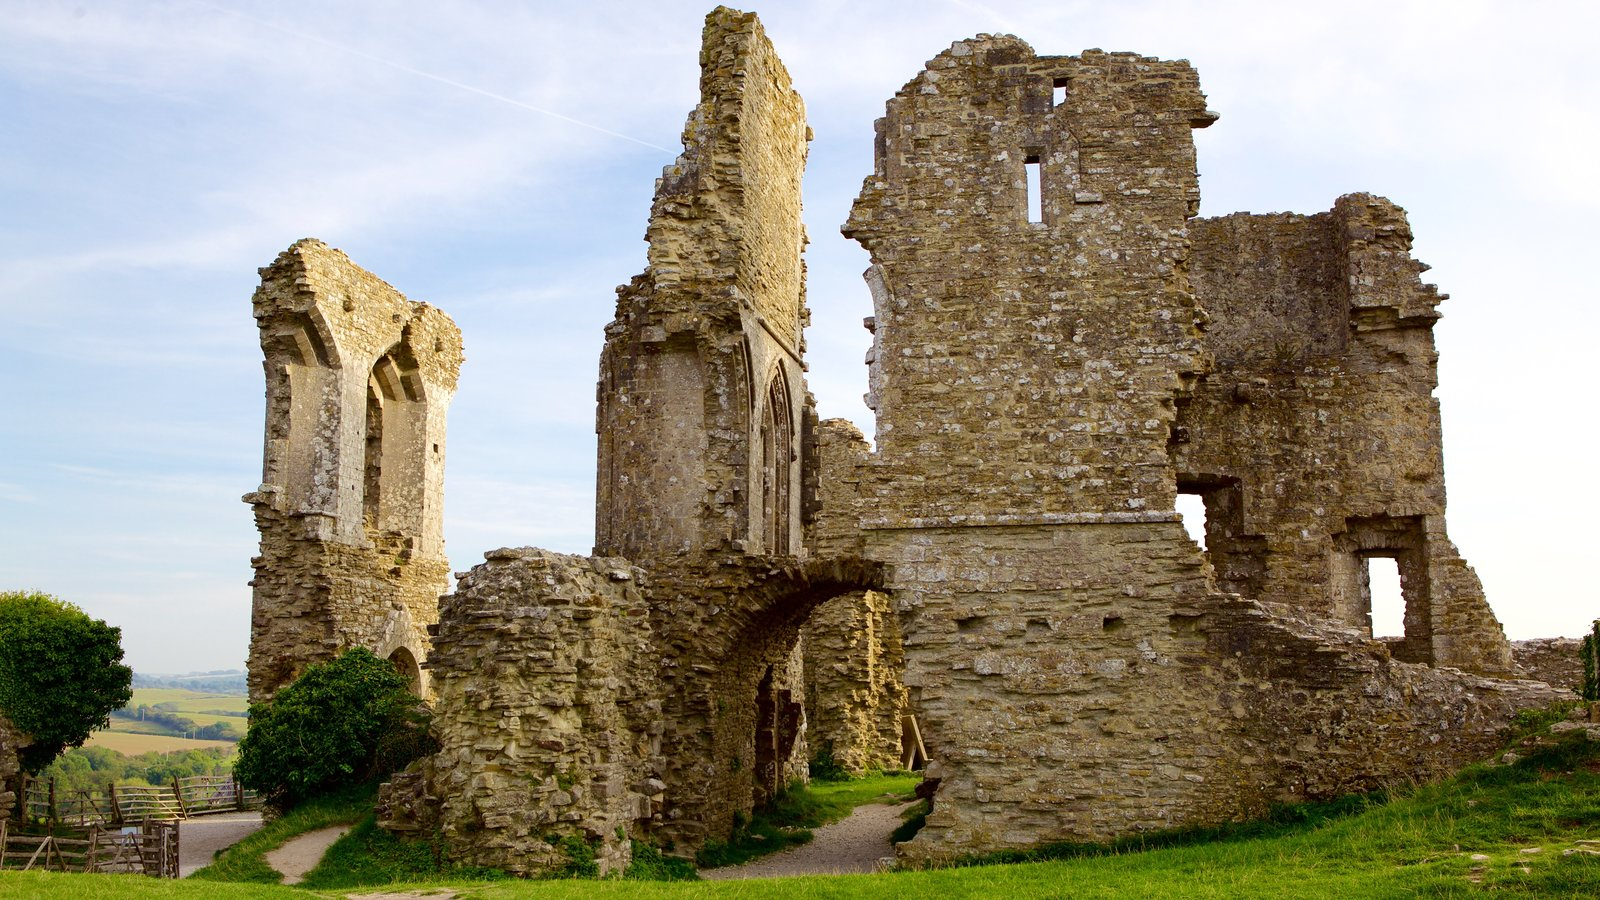 Corfe Castle featuring a ruin and heritage elements